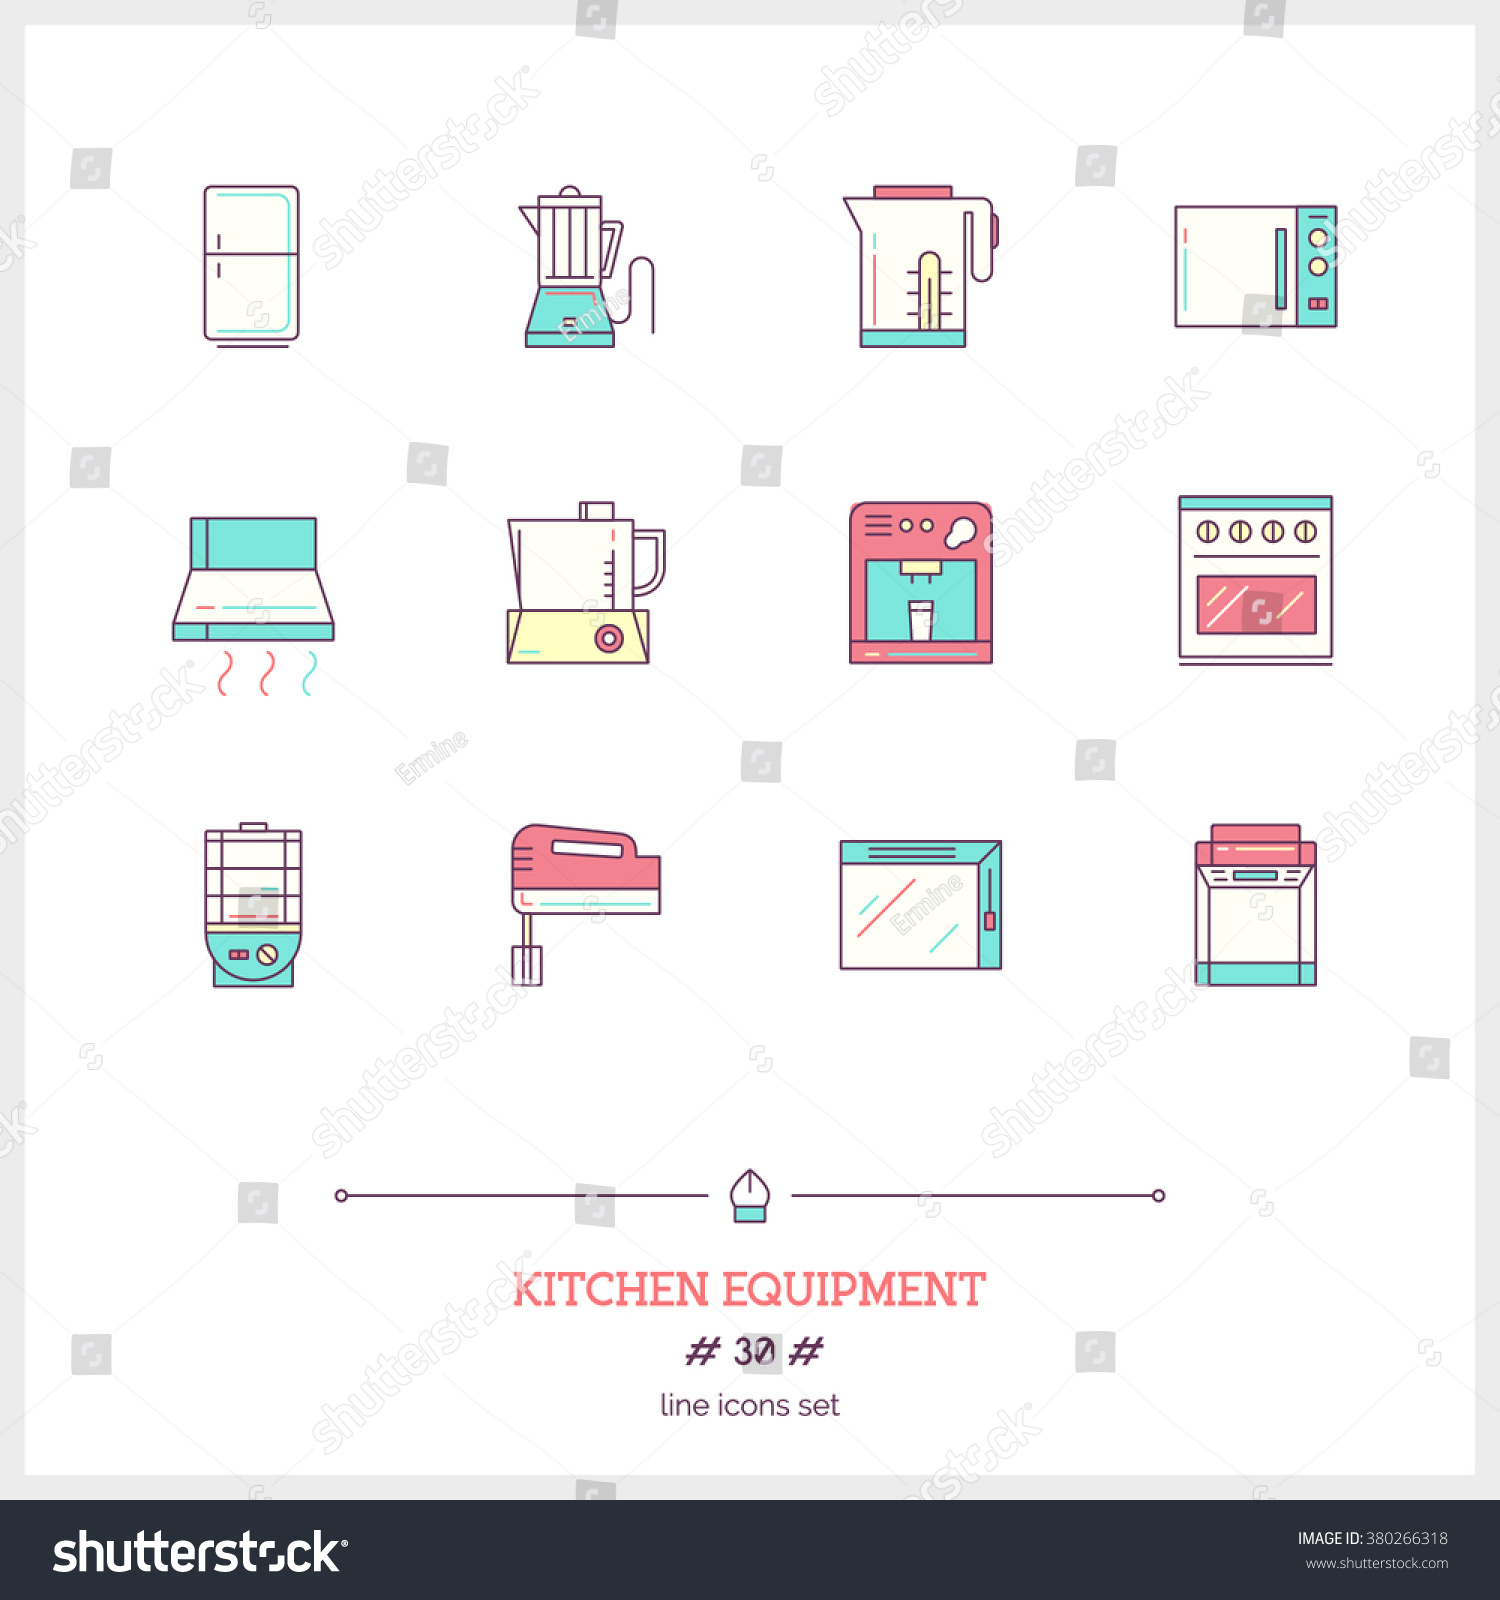 Kitchen equipment and tools and their functions - Color Line Icon Set Kitchen Equipments Stock Vector Kitchen Equpments